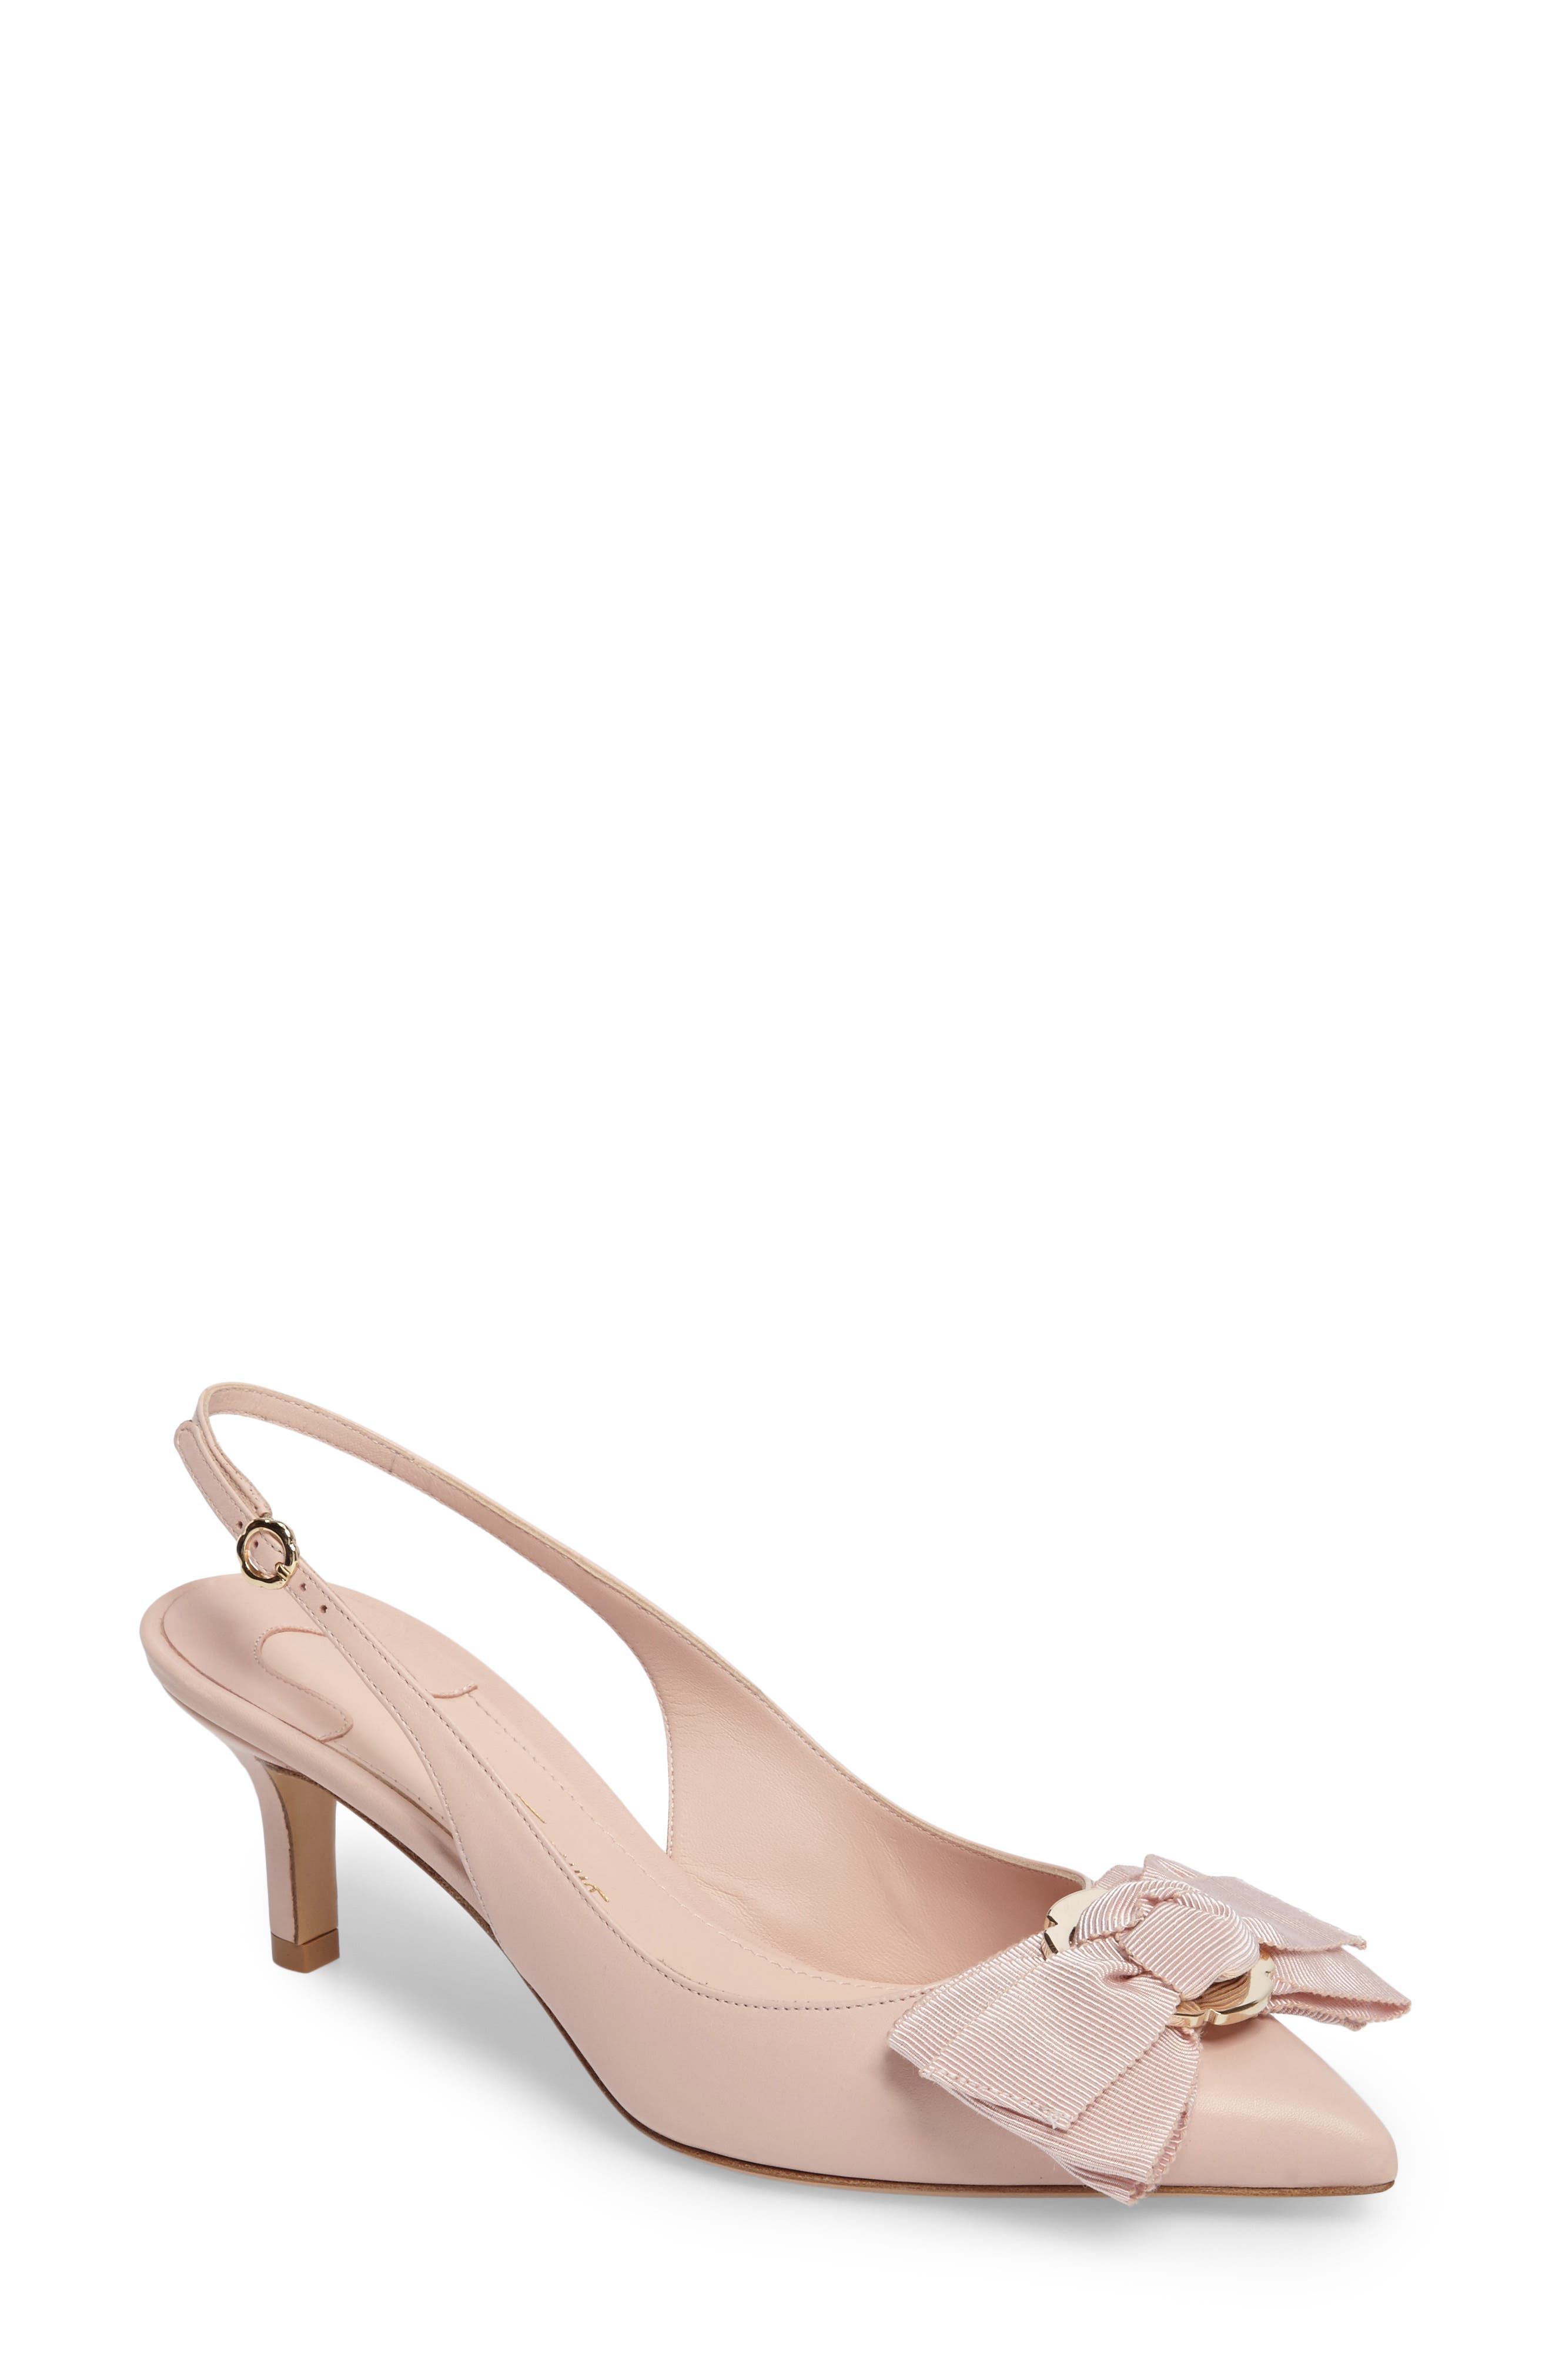 Salvatore Ferragamo Laterina Slingback Pump (Women)